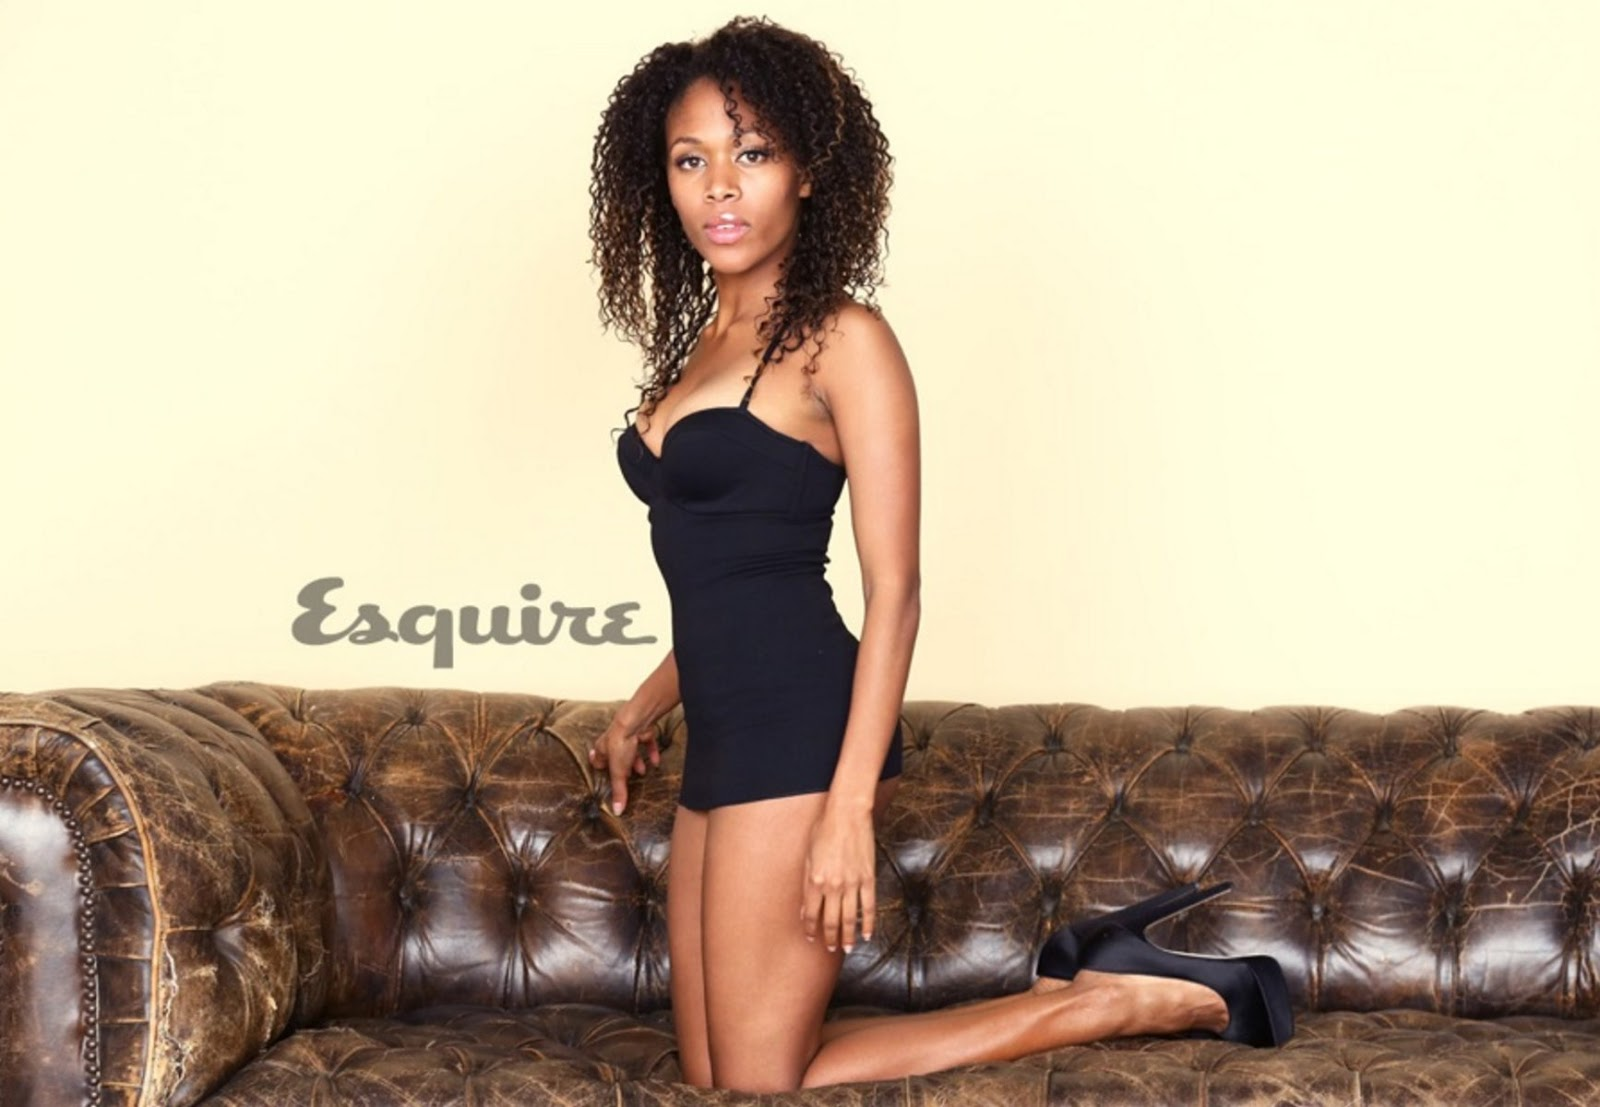 Nicole beharie Wallpaper 1 With 1600 x 1107 Resolution ( 168kB )